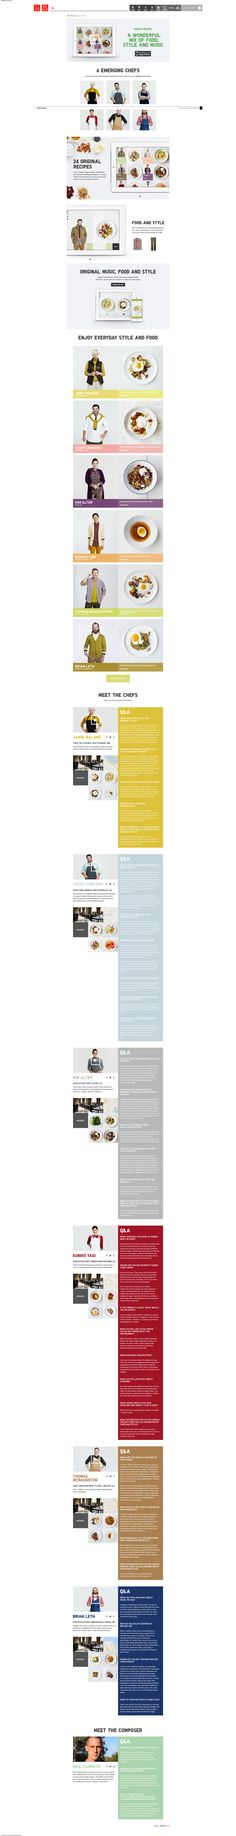 Layouts and top nav bar with search - http://www.uniqlo.com/us/lifetools/recipe/